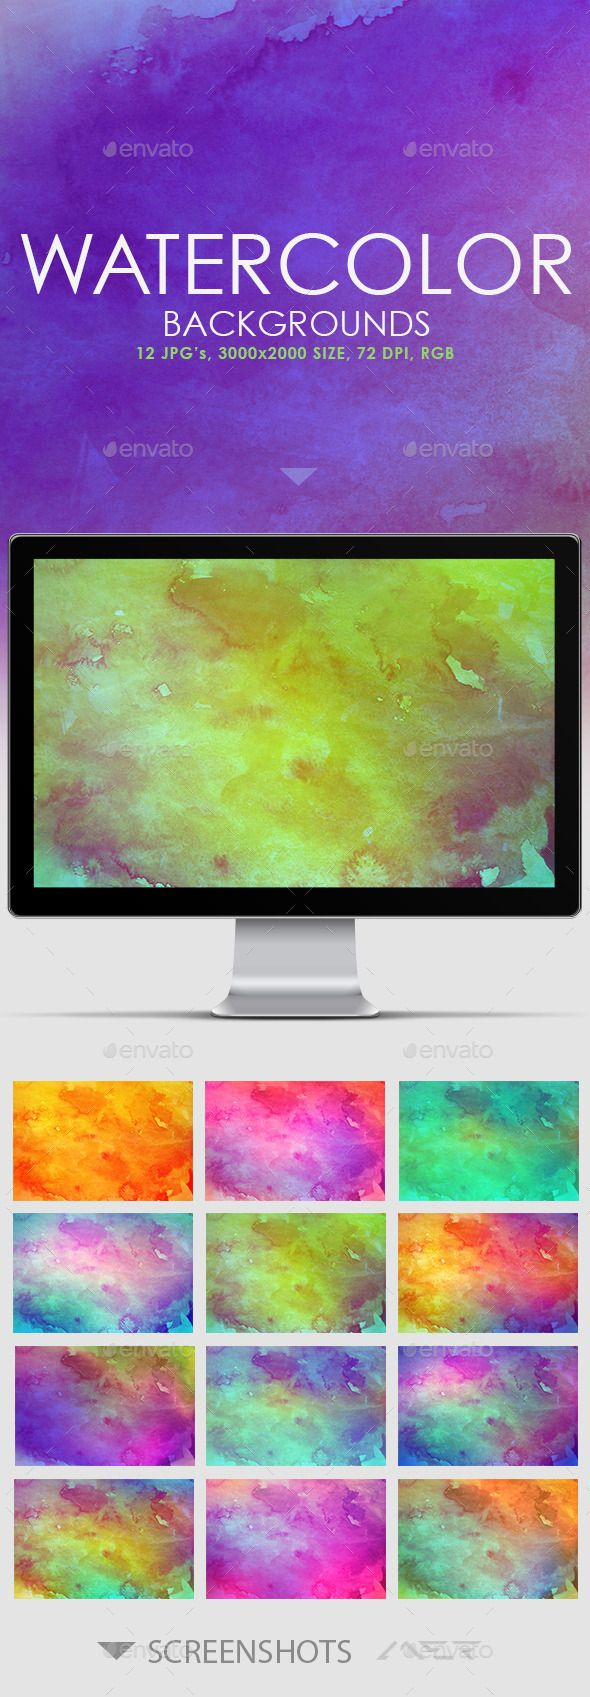 12 Real Watercolor Backgrounds Watercolor Background Background